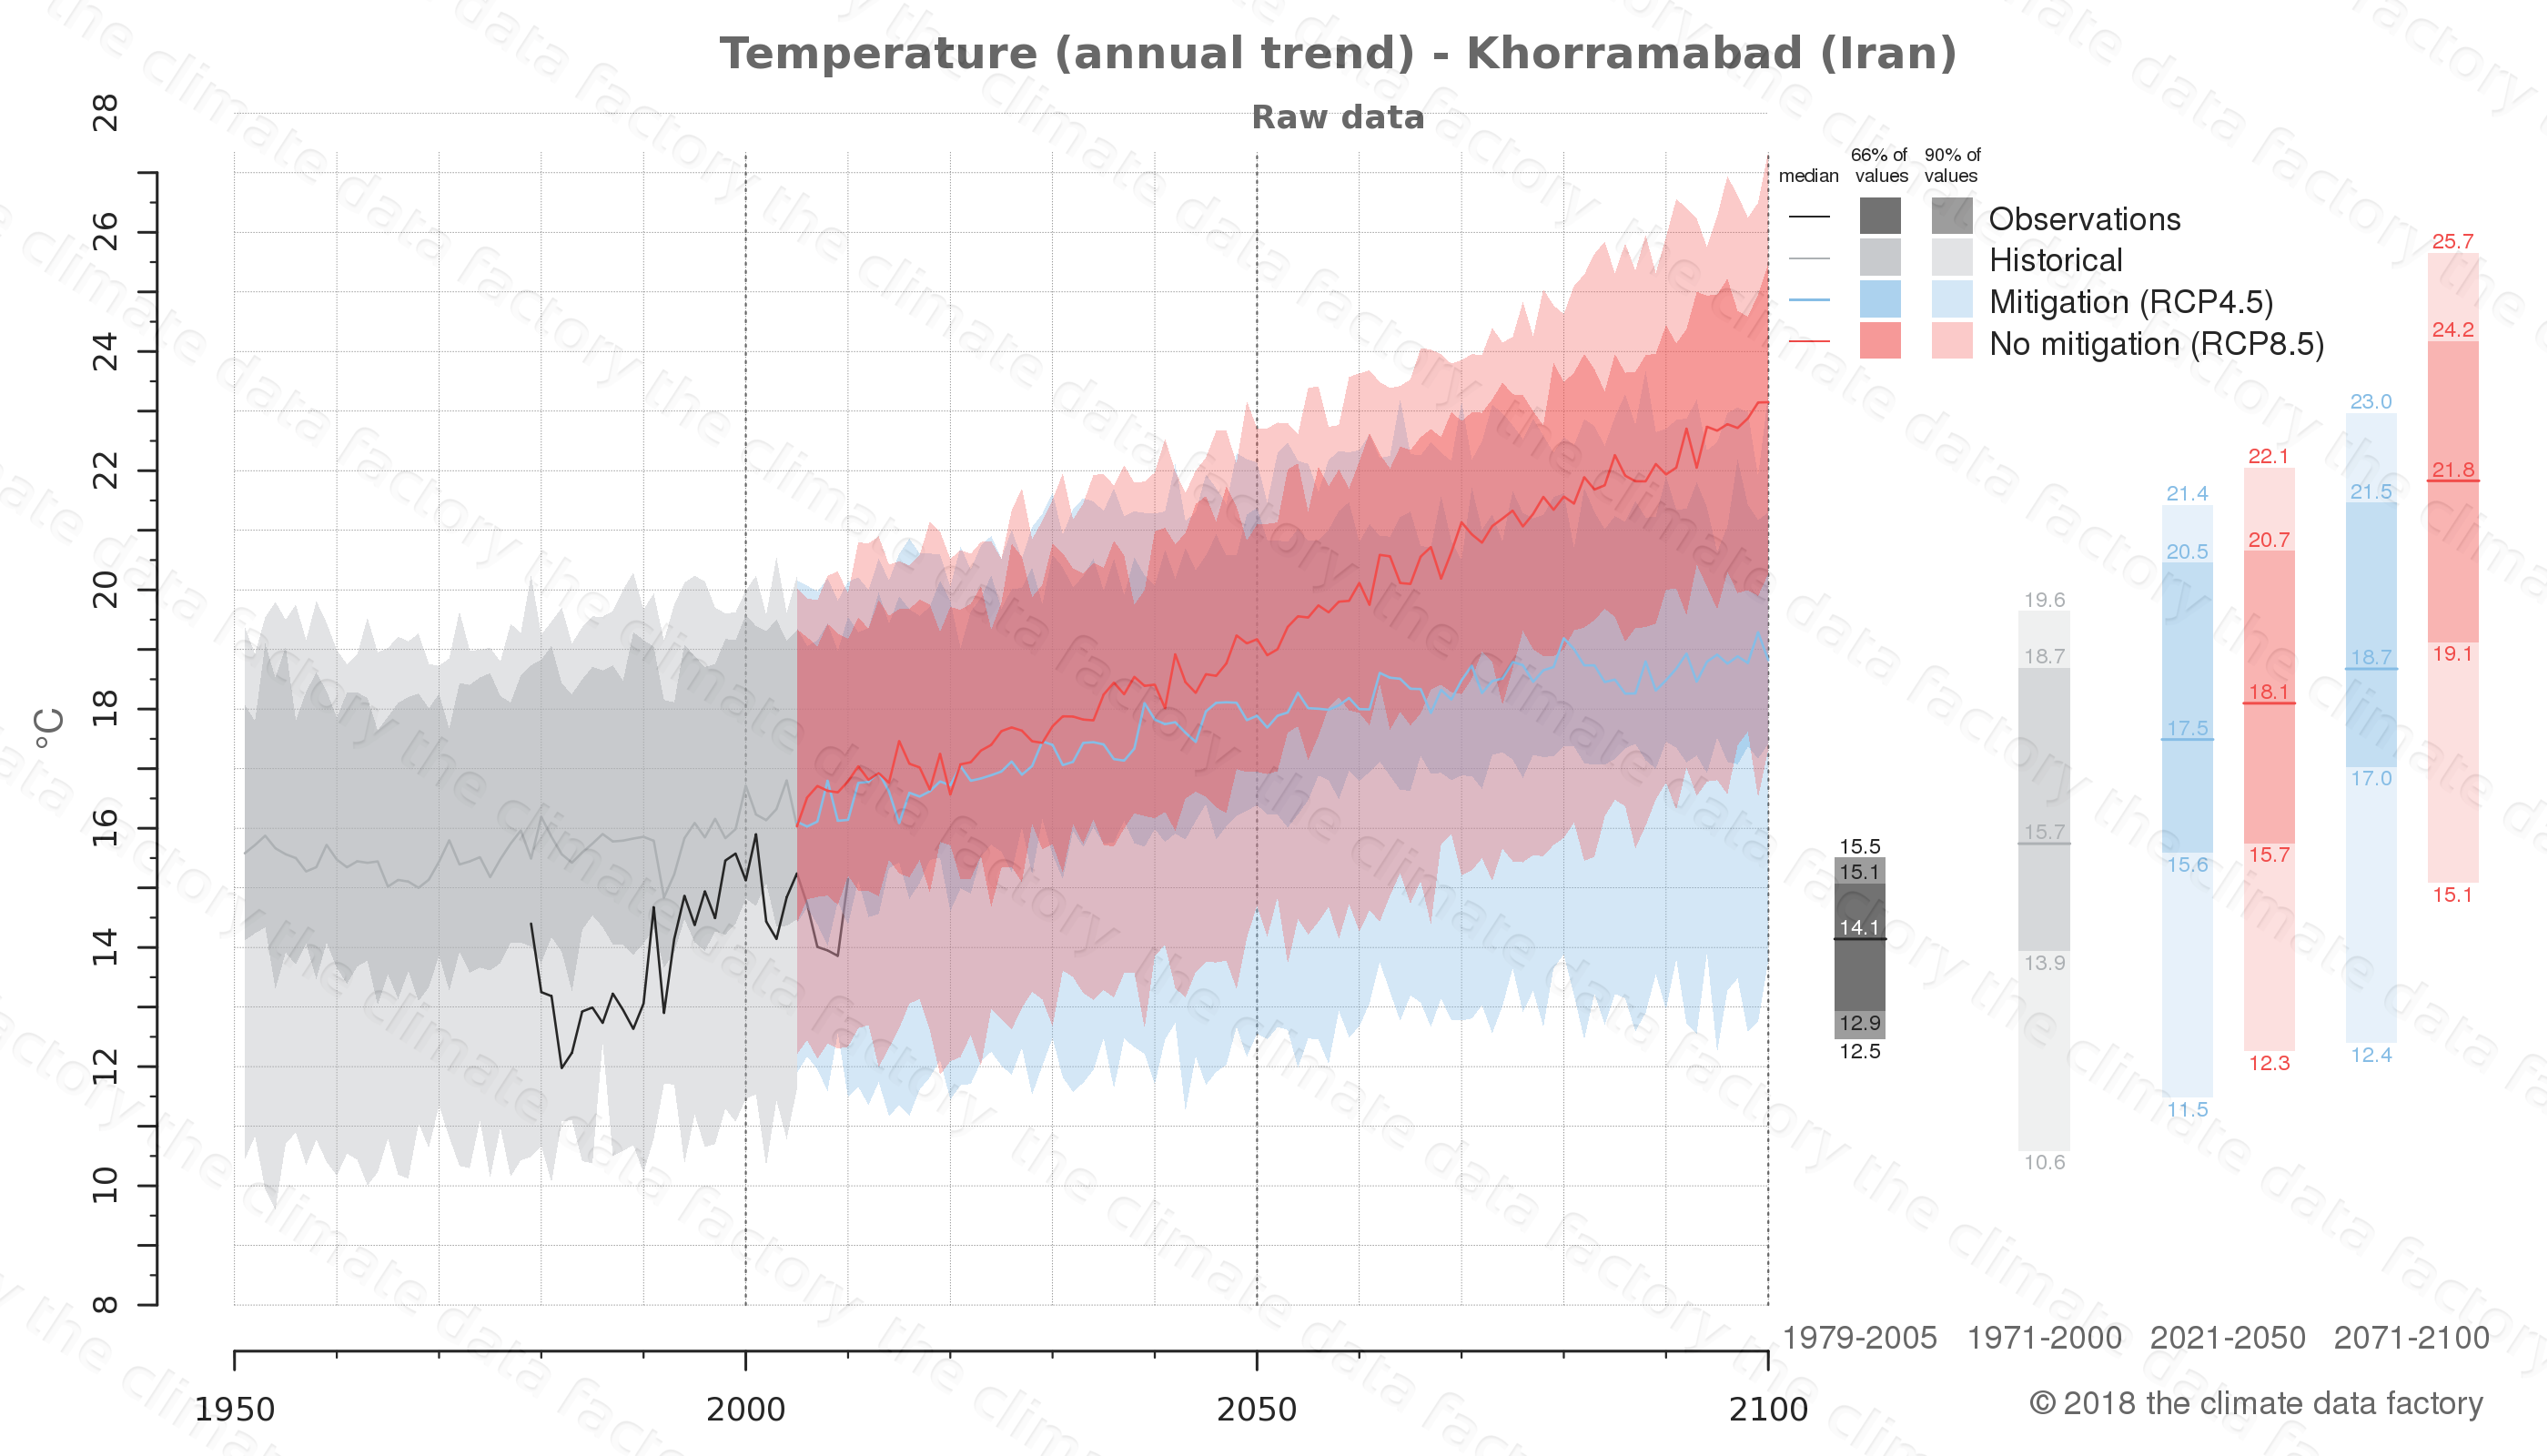 climate change data policy adaptation climate graph city data temperature khorramabad iran